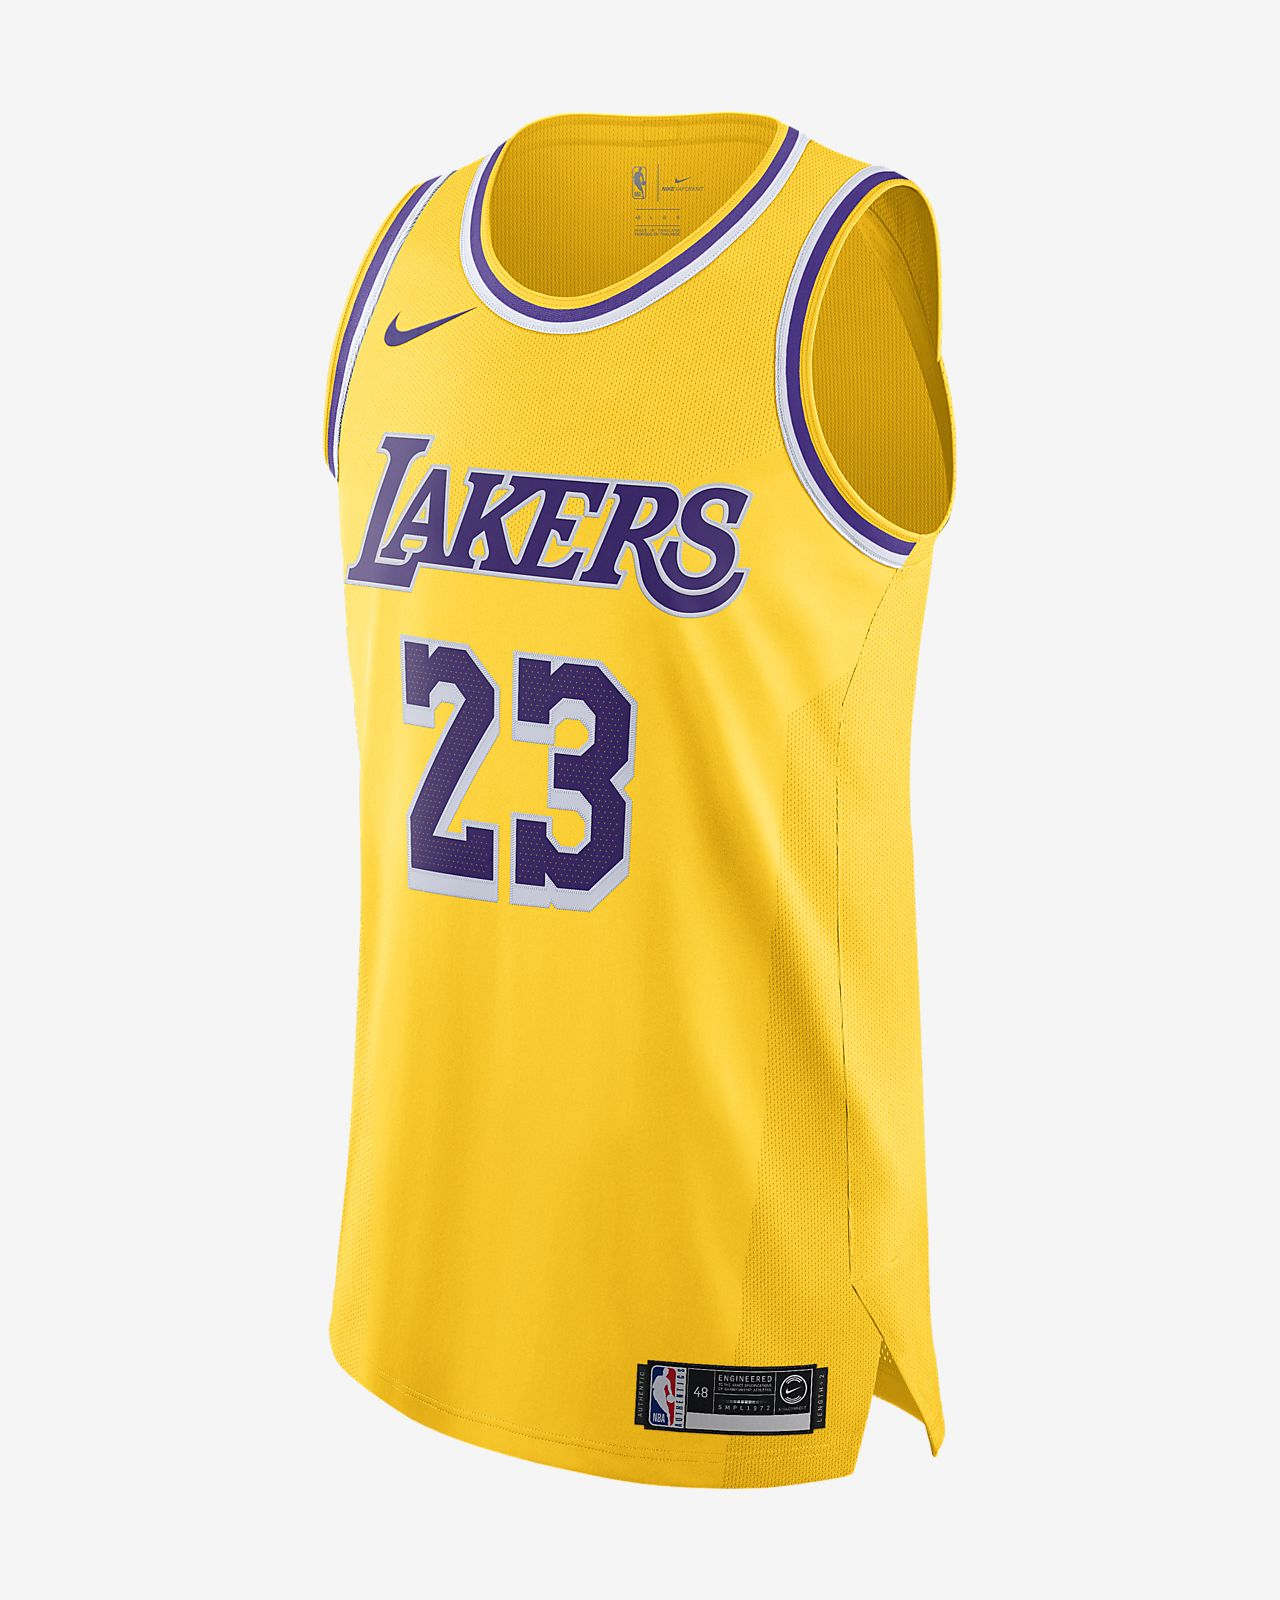 56a2f2eb87c Men s Nike NBA Connected Jersey. LeBron James Icon Edition Authentic (Los  Angeles Lakers)